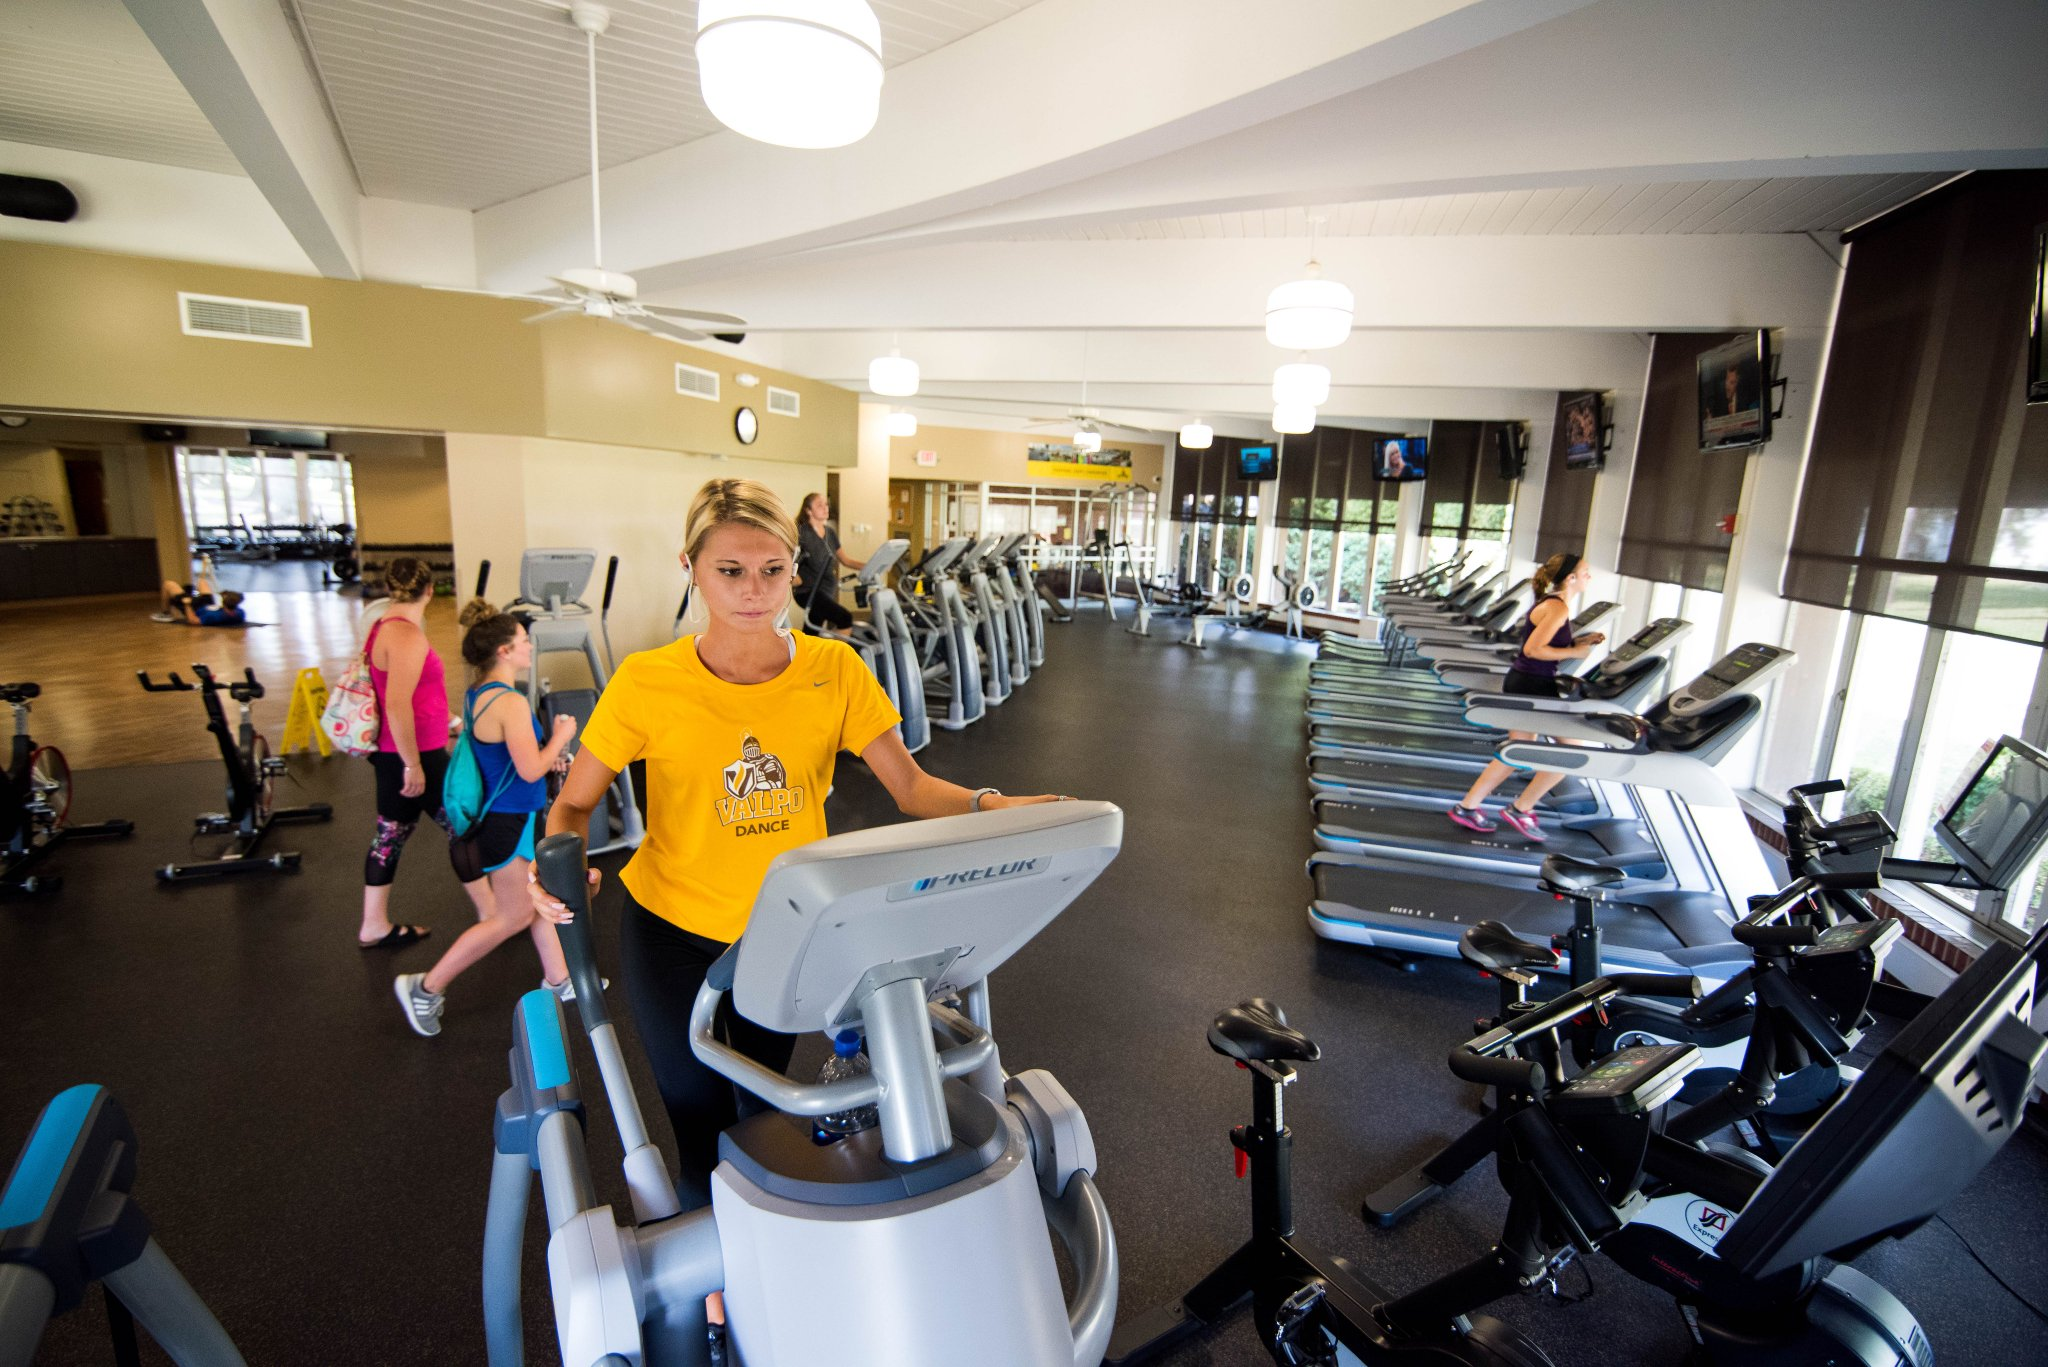 Valparaiso University Pa Twitter Ready To Hit The Gym All Students Have Free Access To The Fitness Center With Your Onecard You Can Work Out Independently With A Friend Or Even Participate